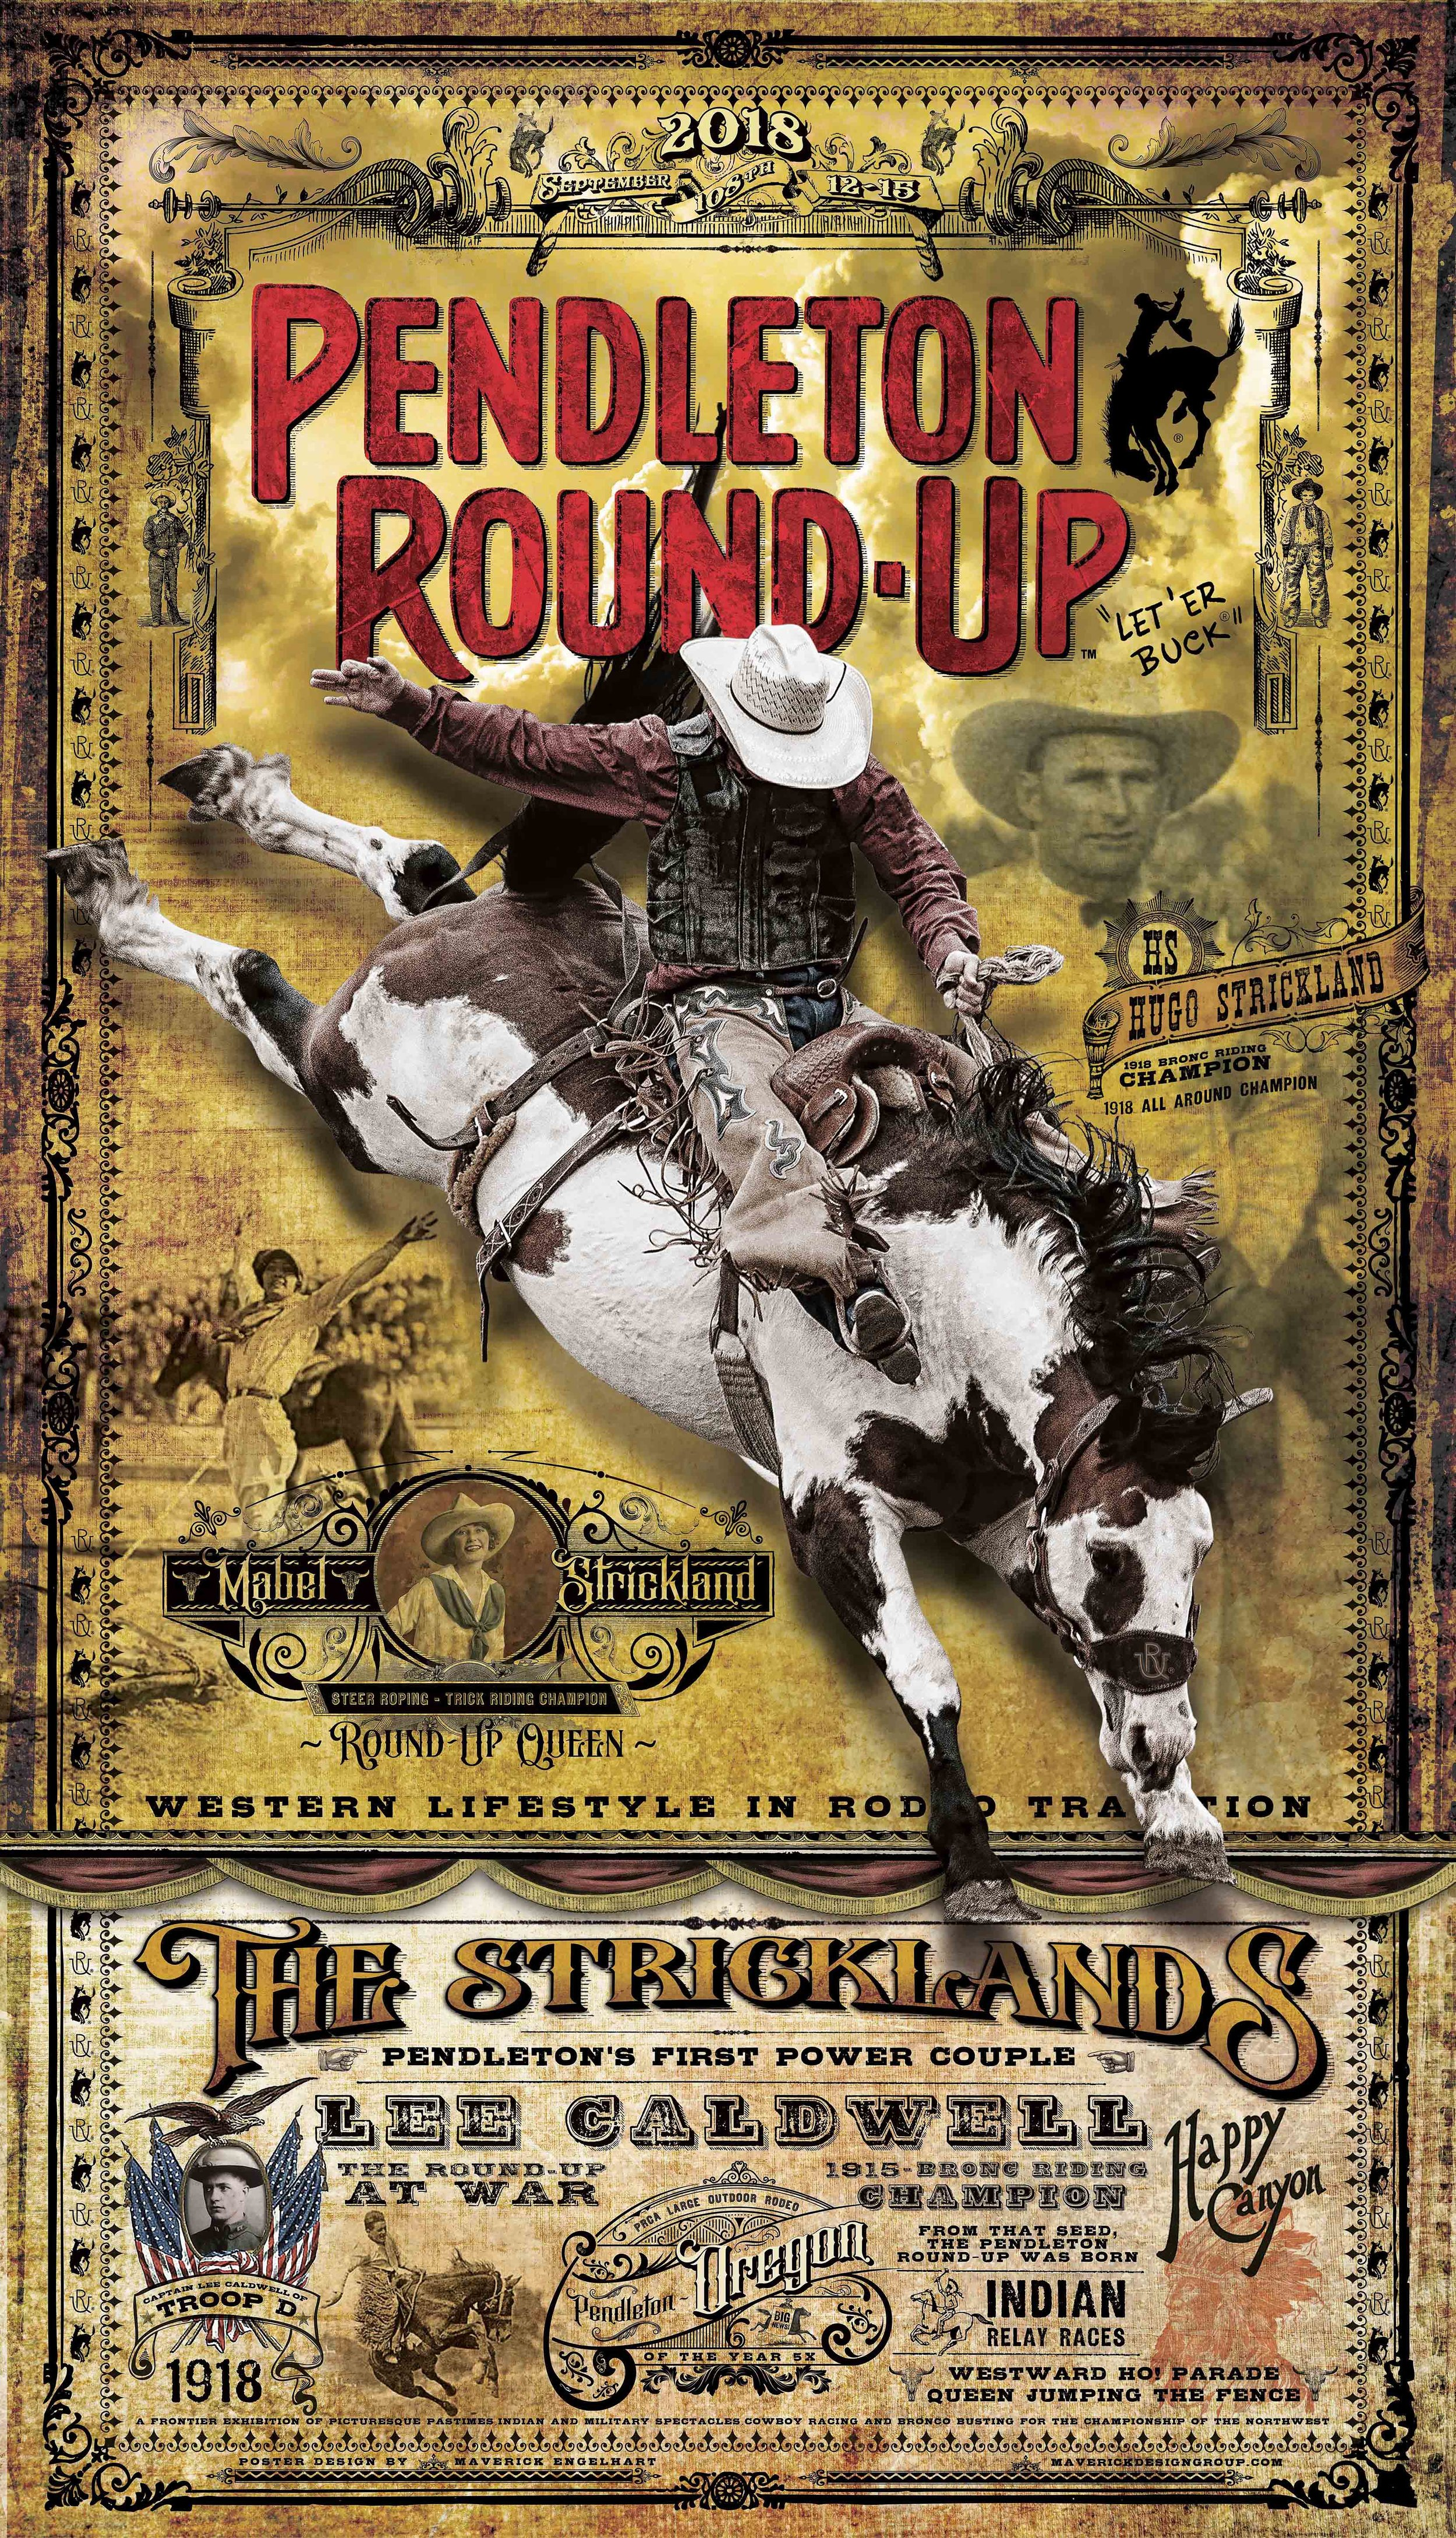 2018 Pendleton Round-Up Rodeo Poster